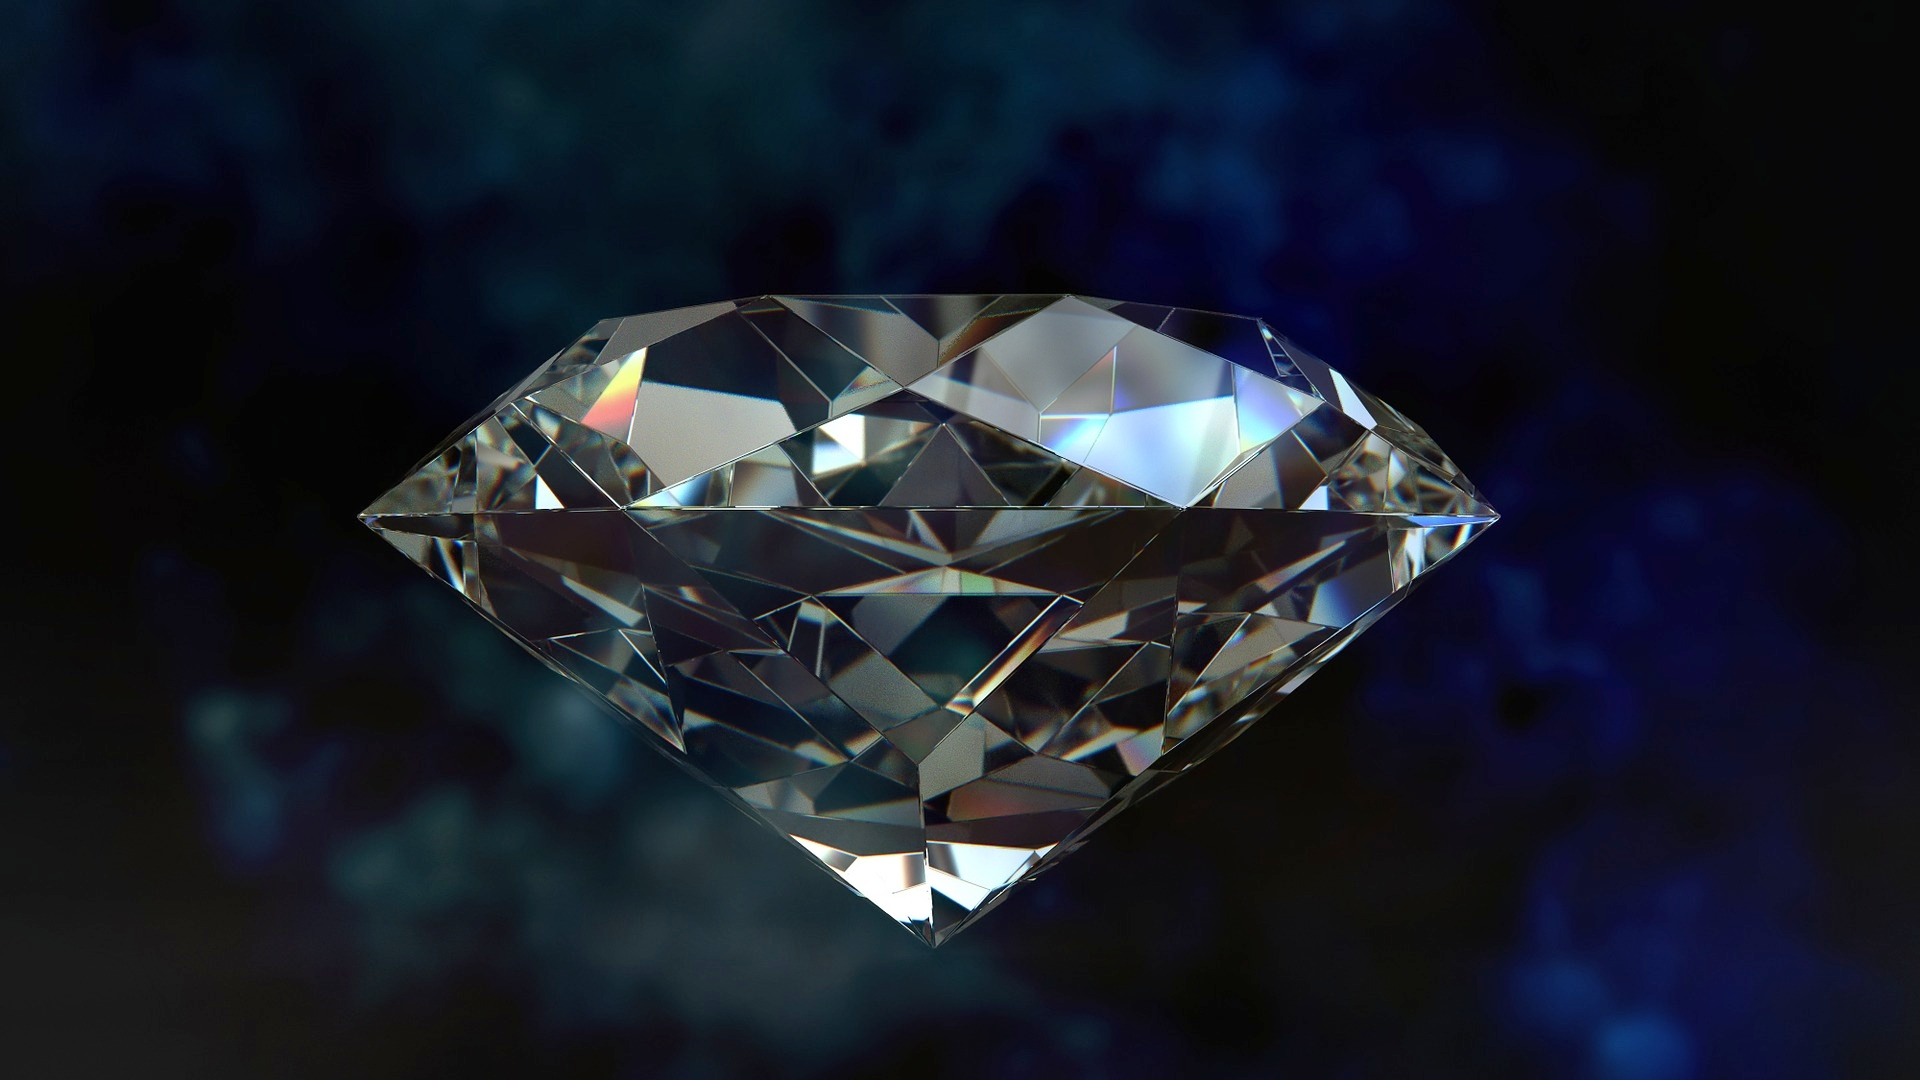 I know, it's that old diamond = crystal clear chestnut. But, honestly, trying to find an image that doesn't descend into cliche is nigh on impossible. Just so we're clear.